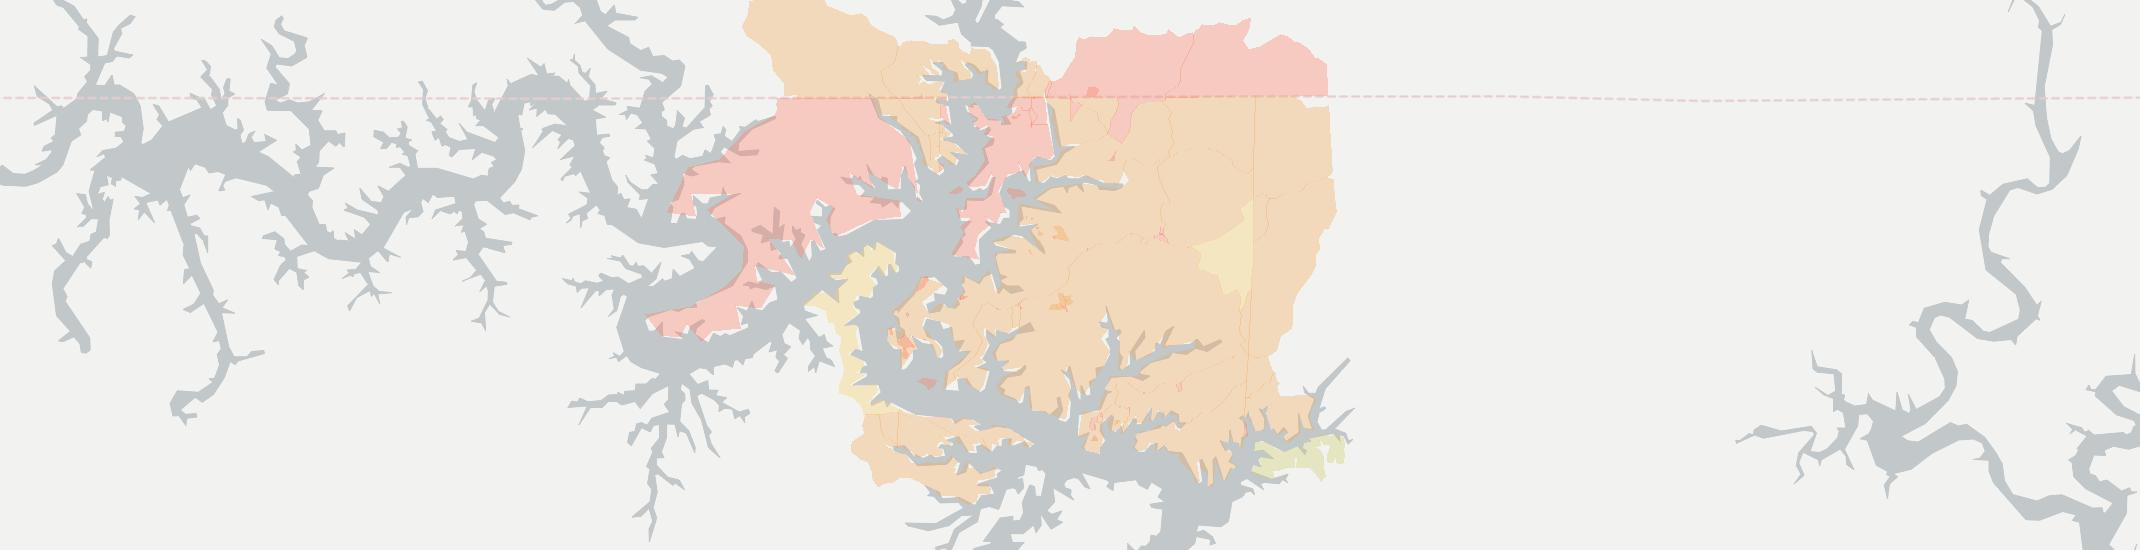 Oakland Internet Competition Map. Click for interactive map.